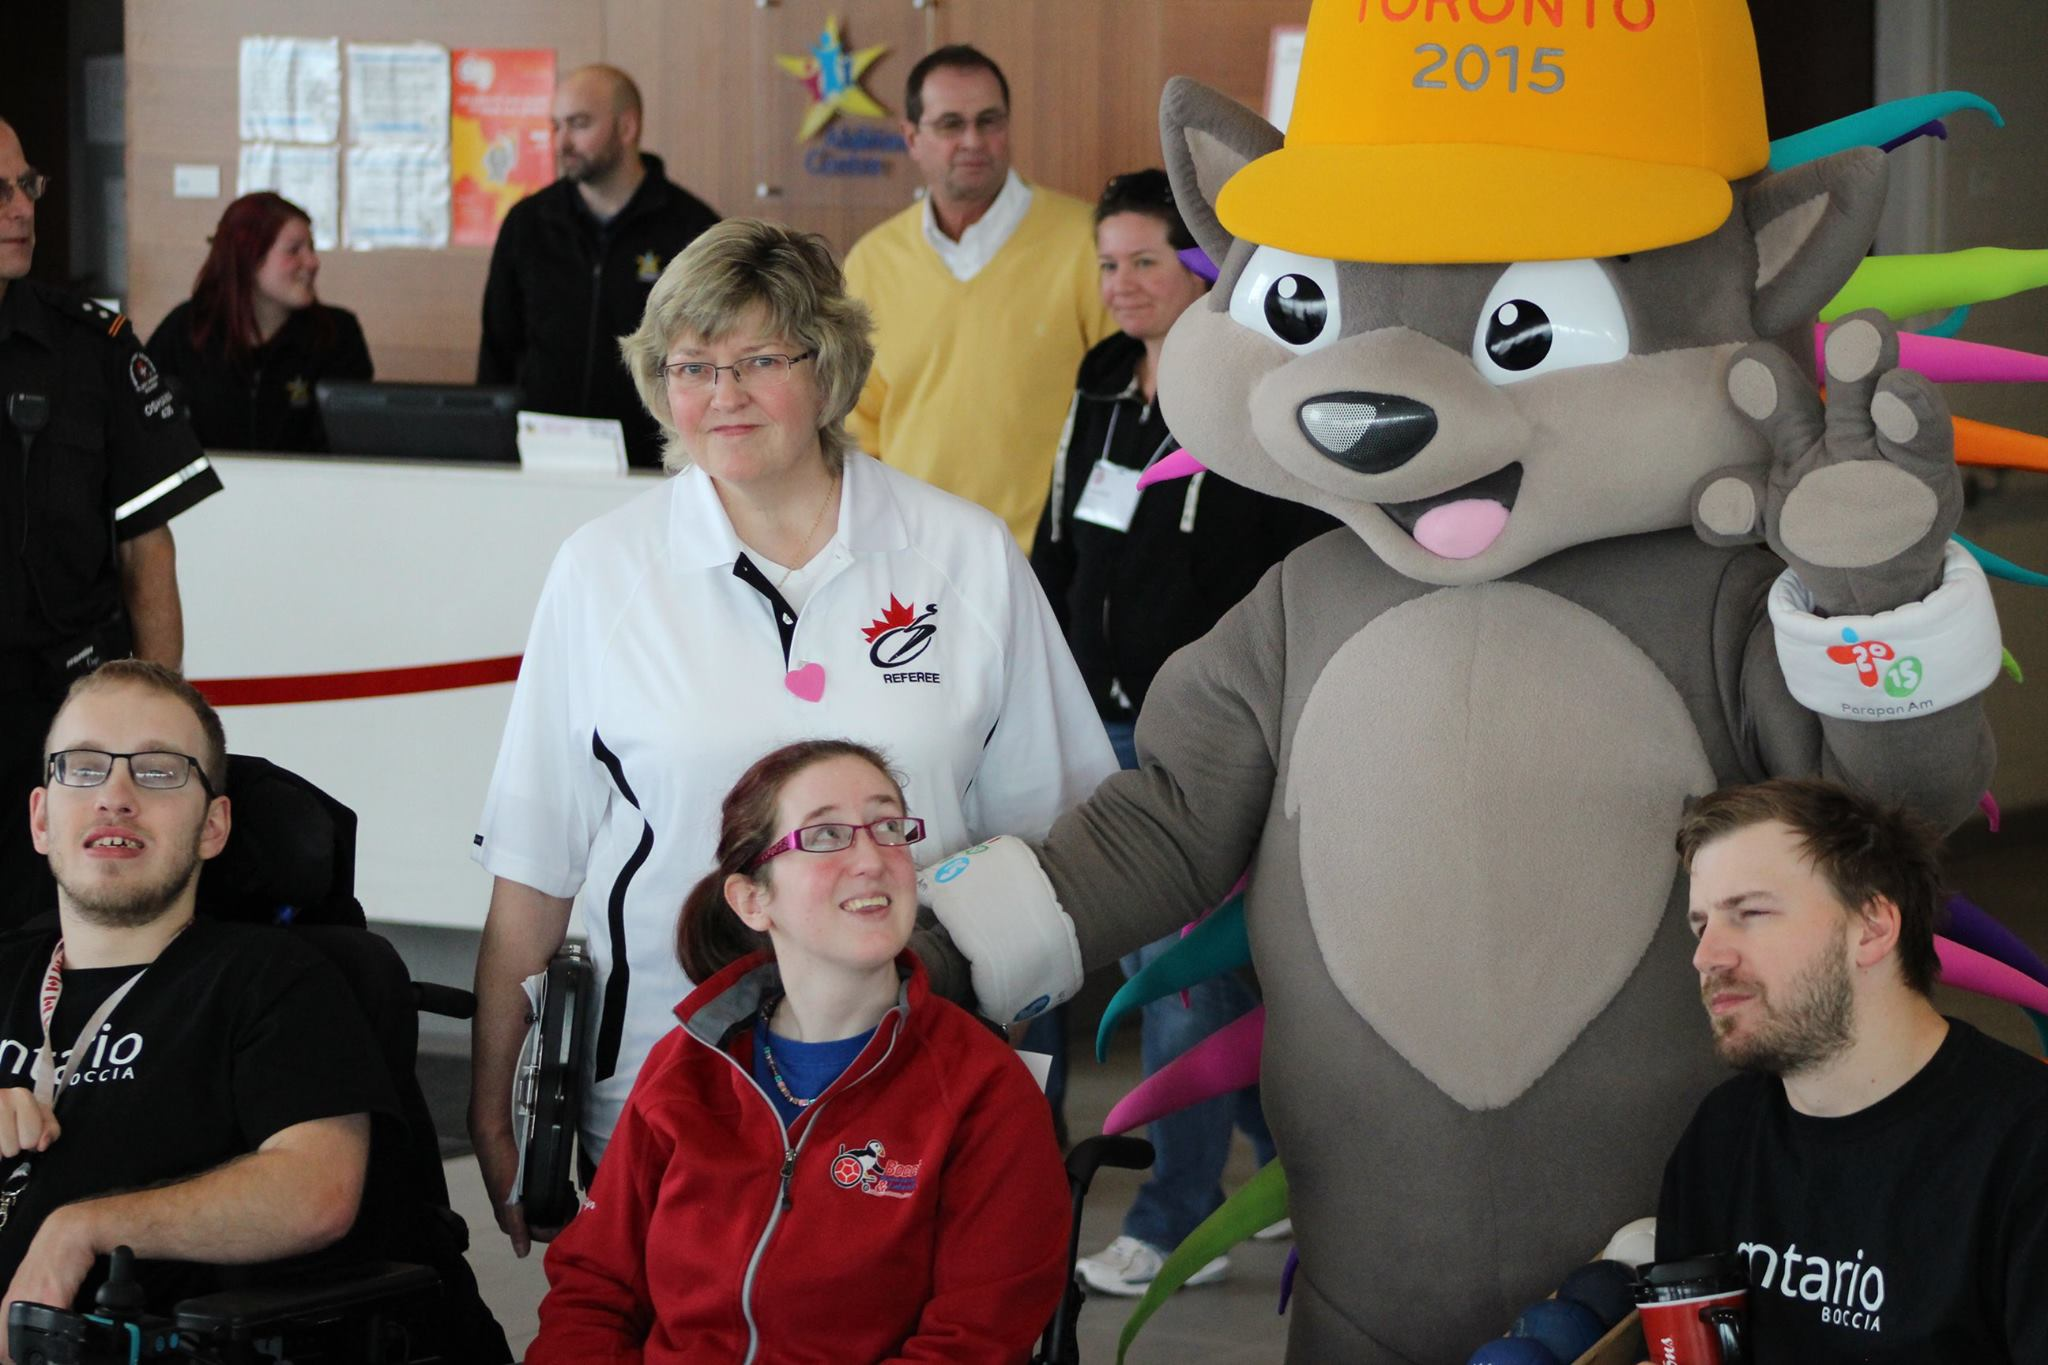 Pachi the porcupine paid a visit to the Canadian Boccia Championships ©Canadian Cerebral Palsy Sports Association/Facebook